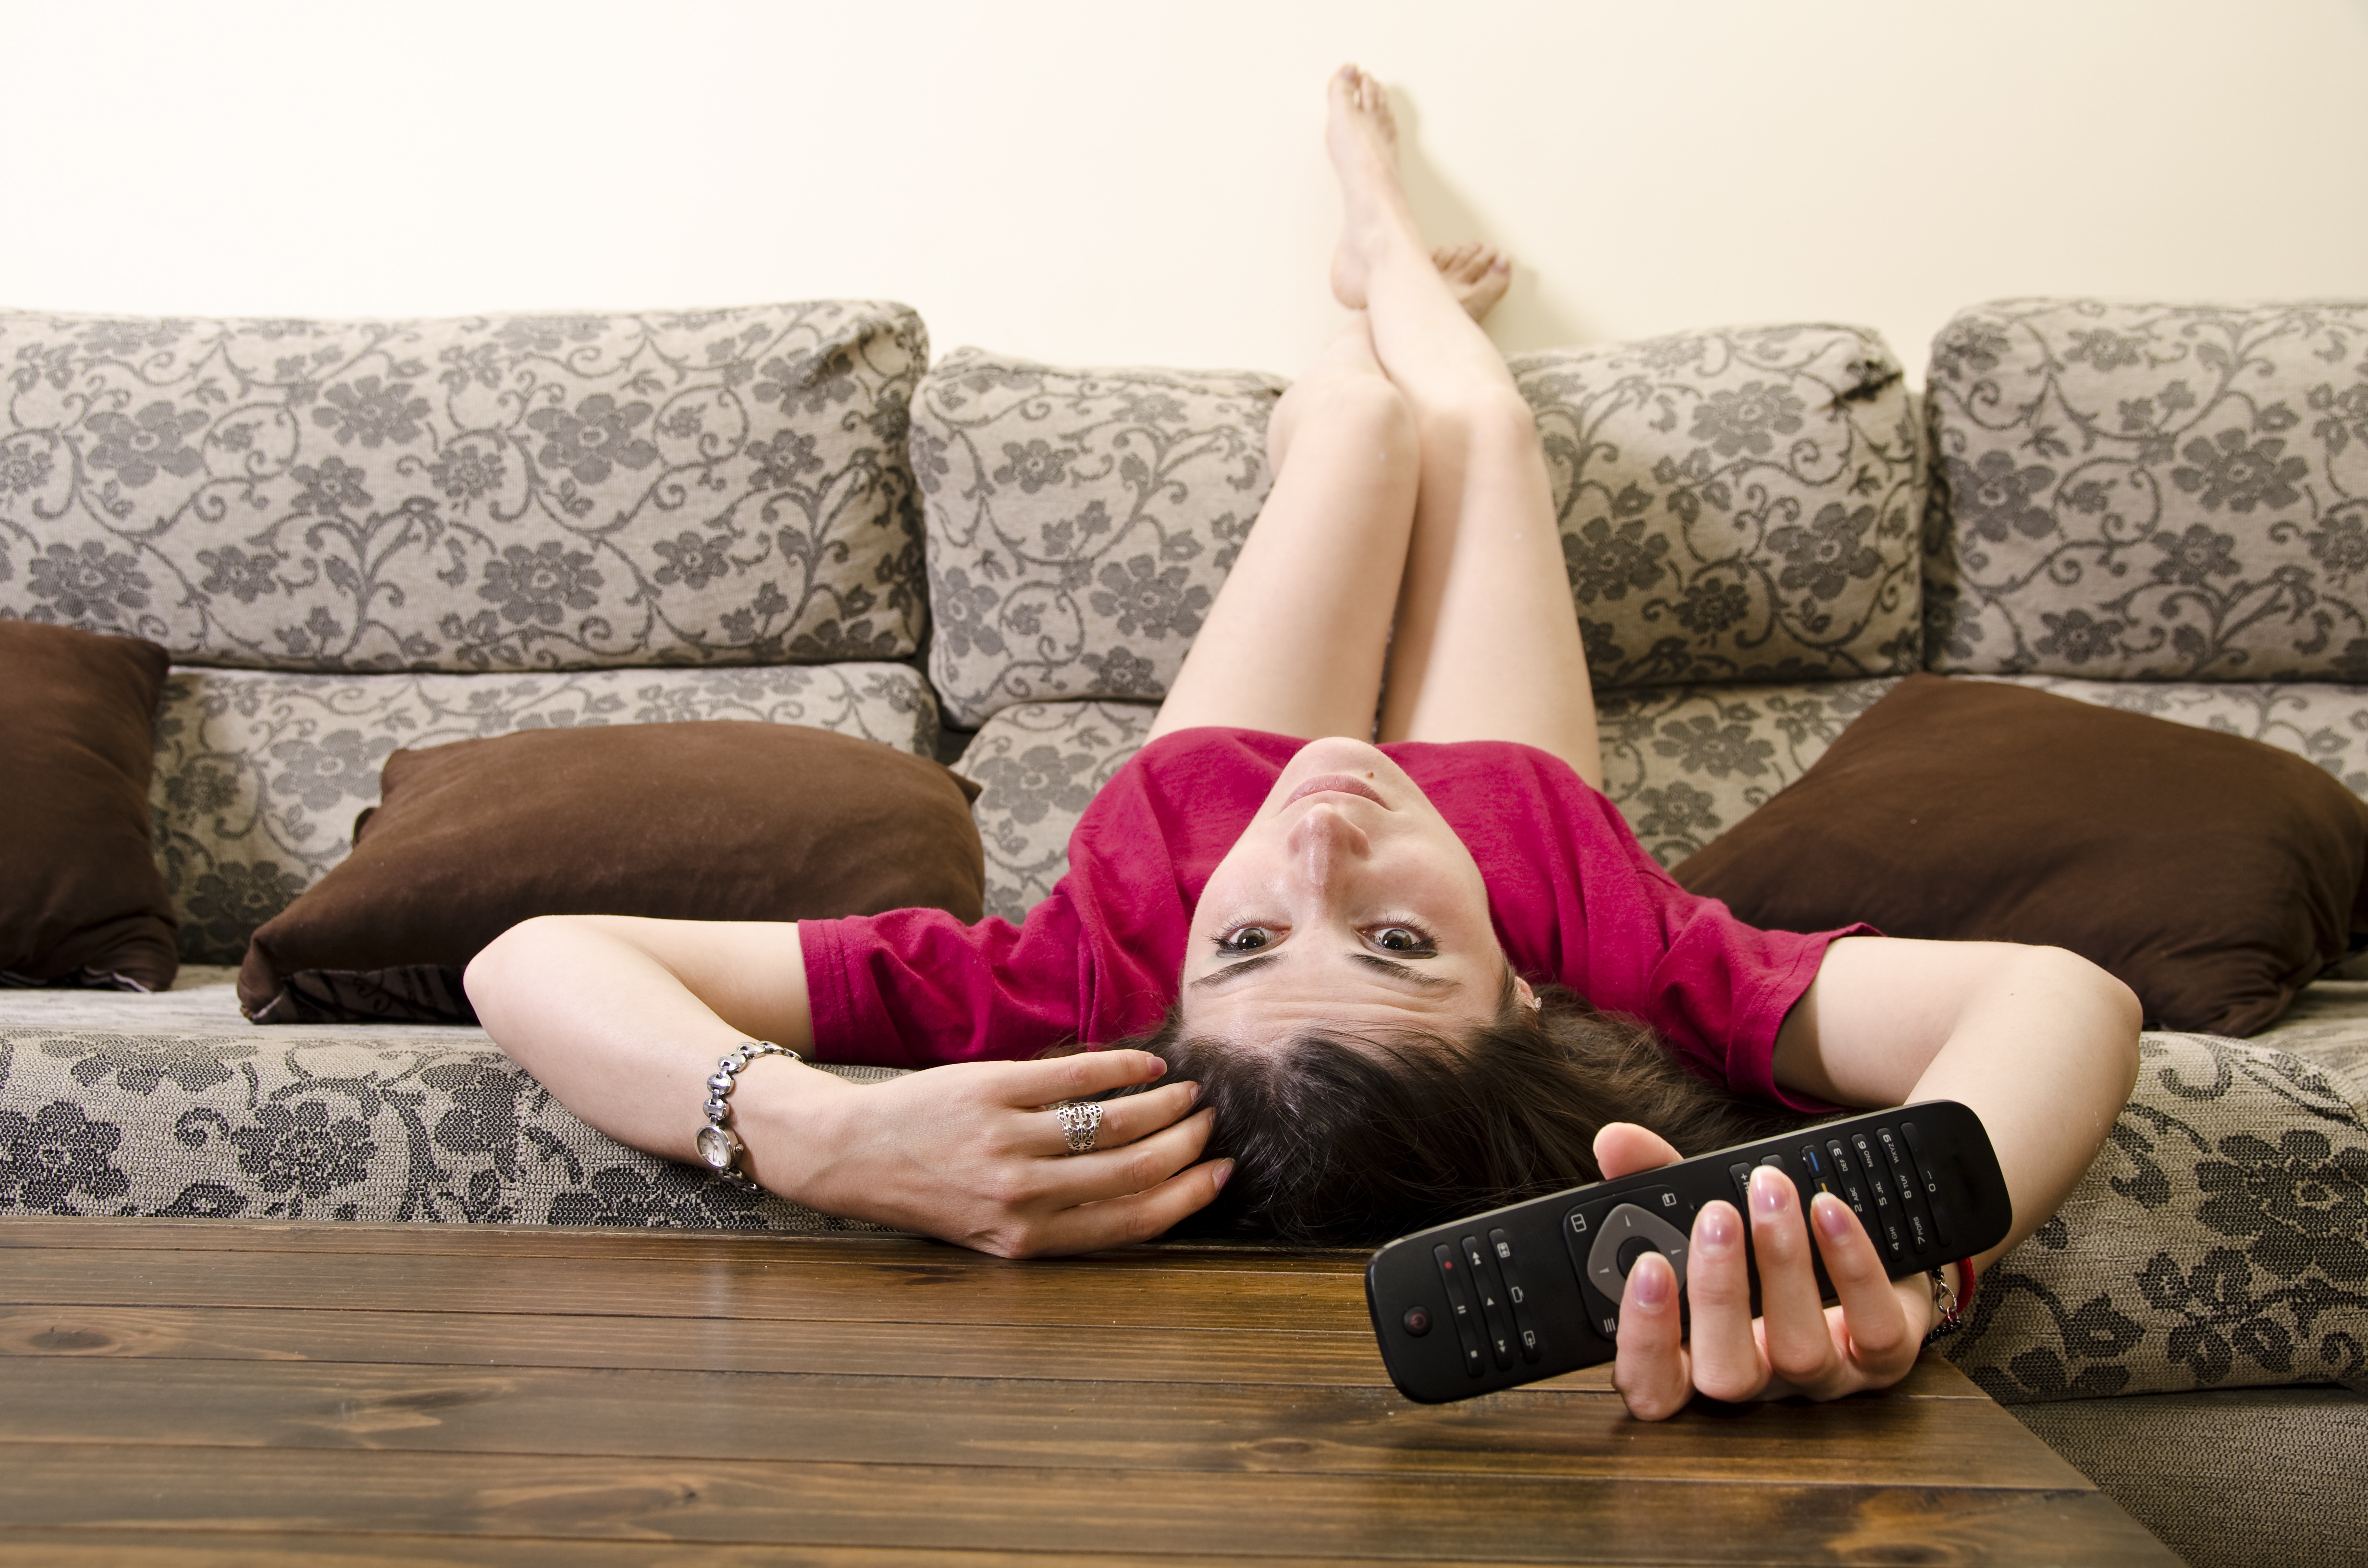 Girl lying facedown watching television alone.